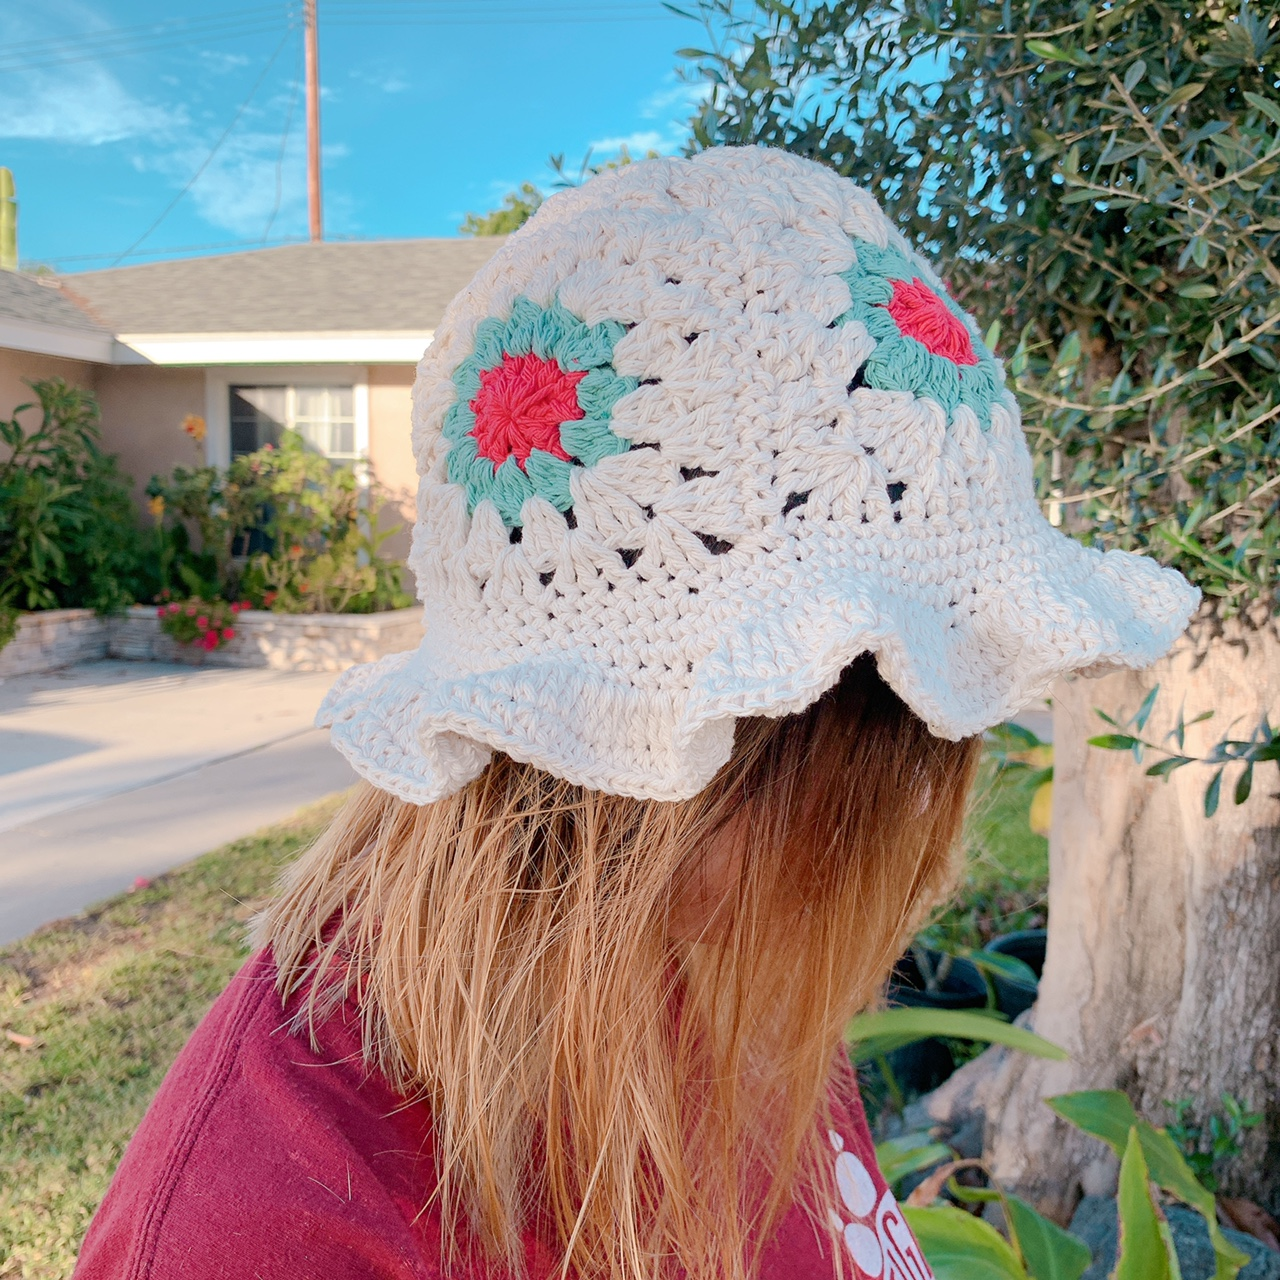 White Granny Square Crochet Bucket Hat Made From Depop